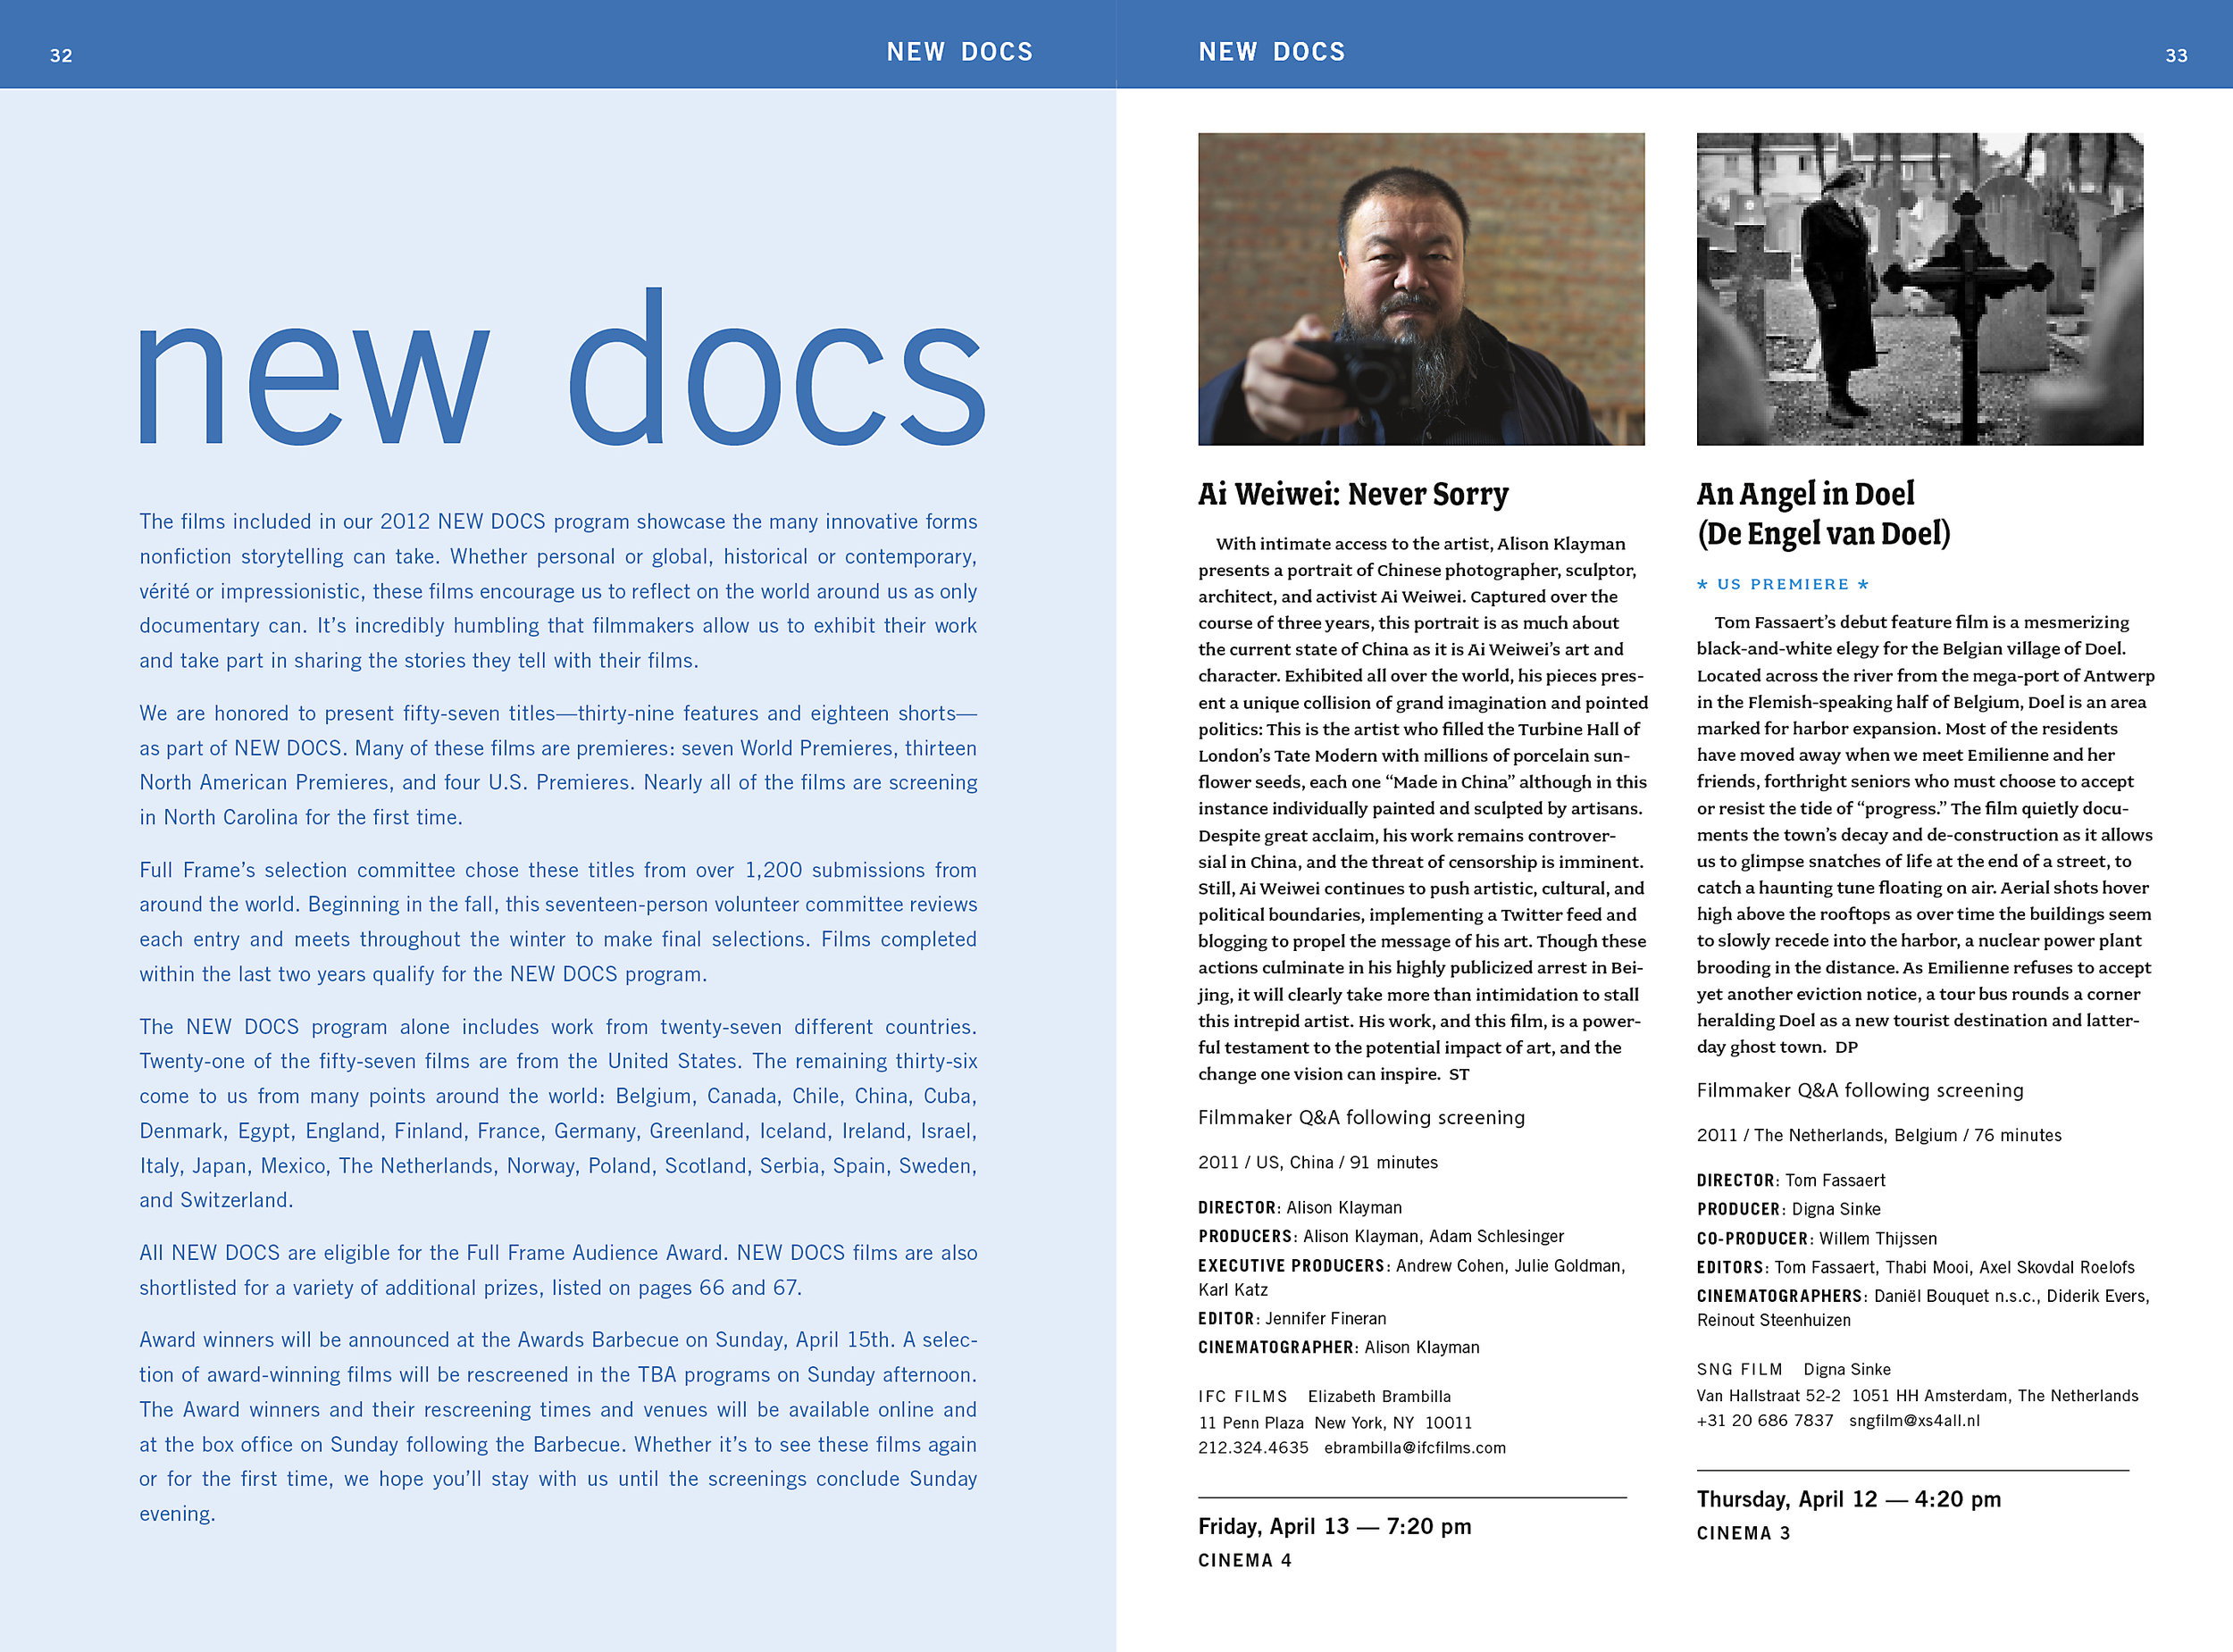 The heart of the catalog is descriptions of the documentaries debuting at the festival.